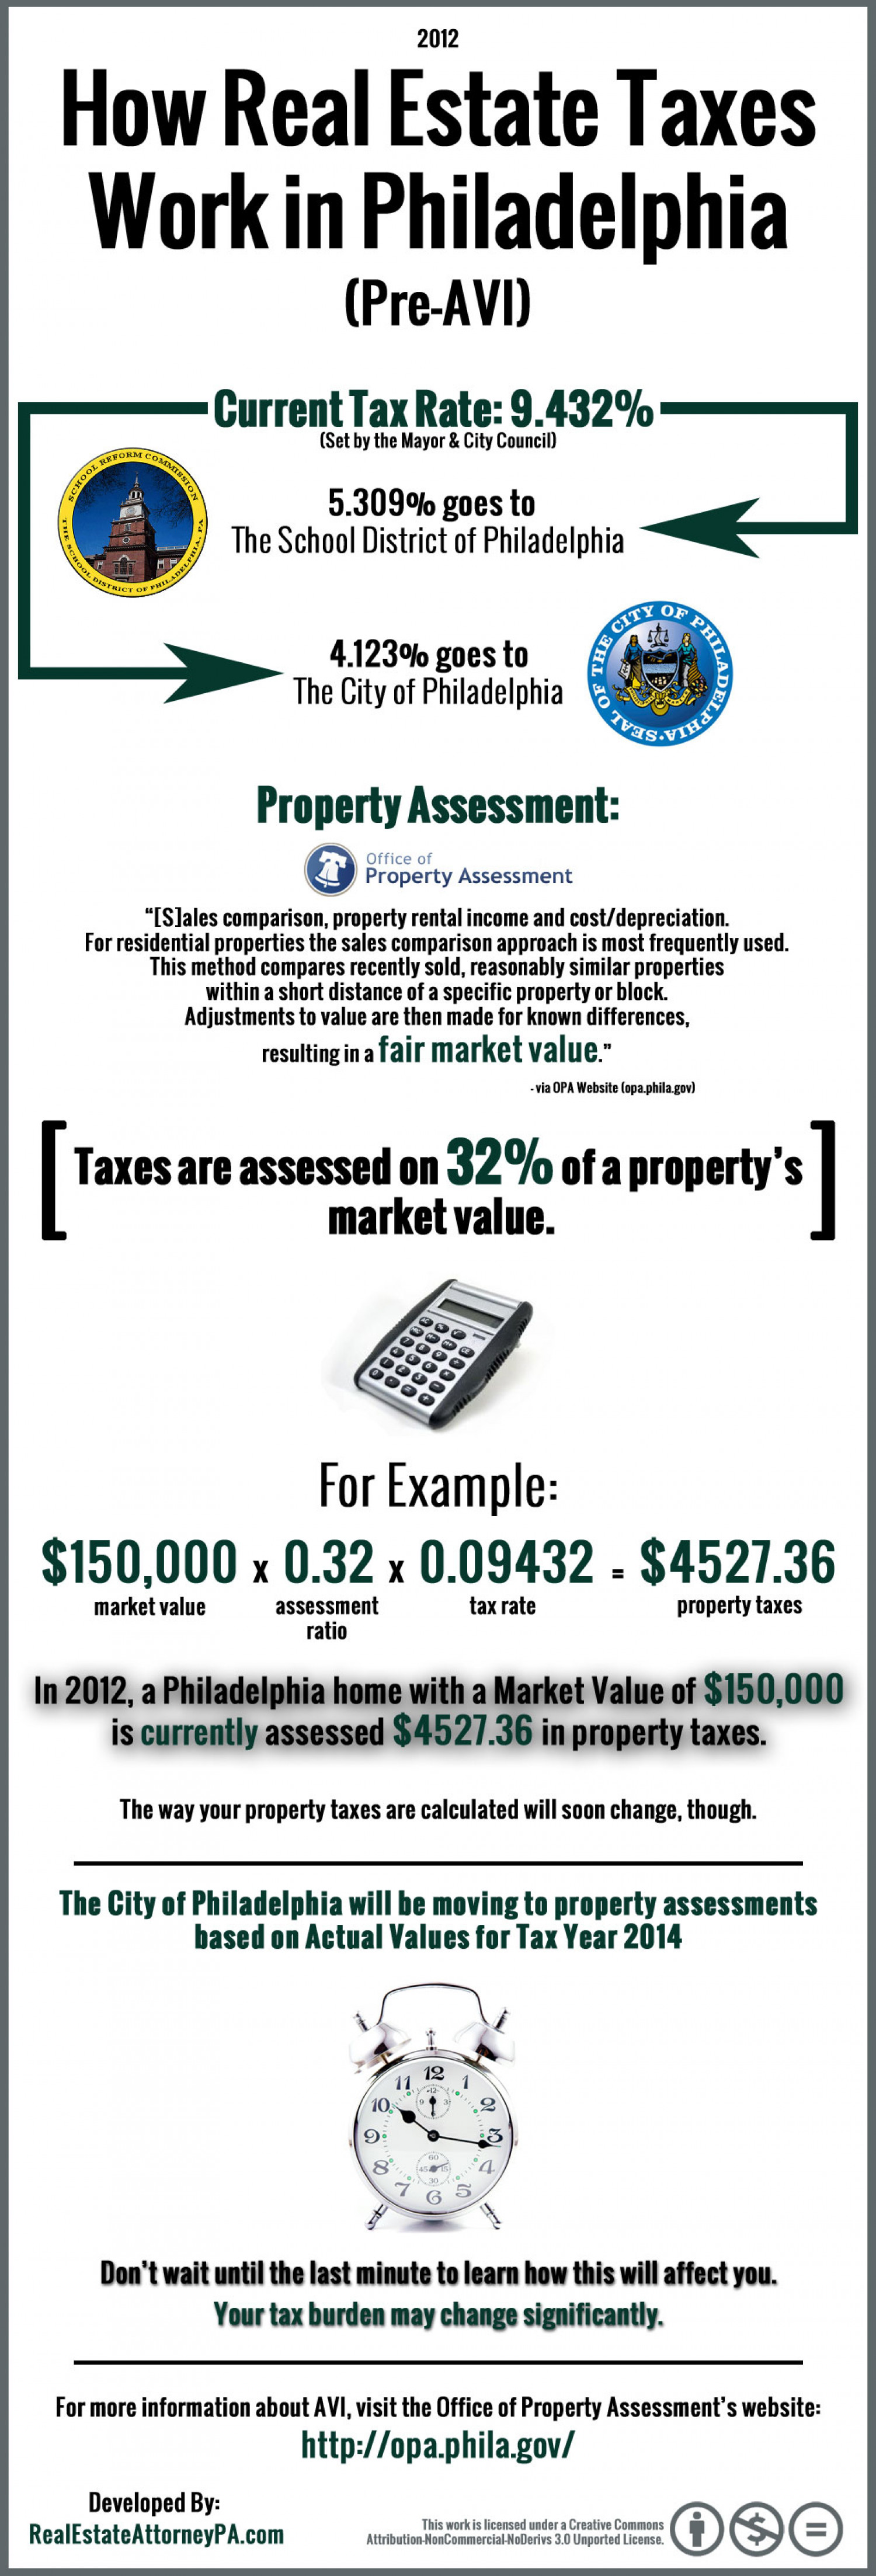 How Real Estate Taxes Work in Philadelphia (Pre-AVI) Infographic